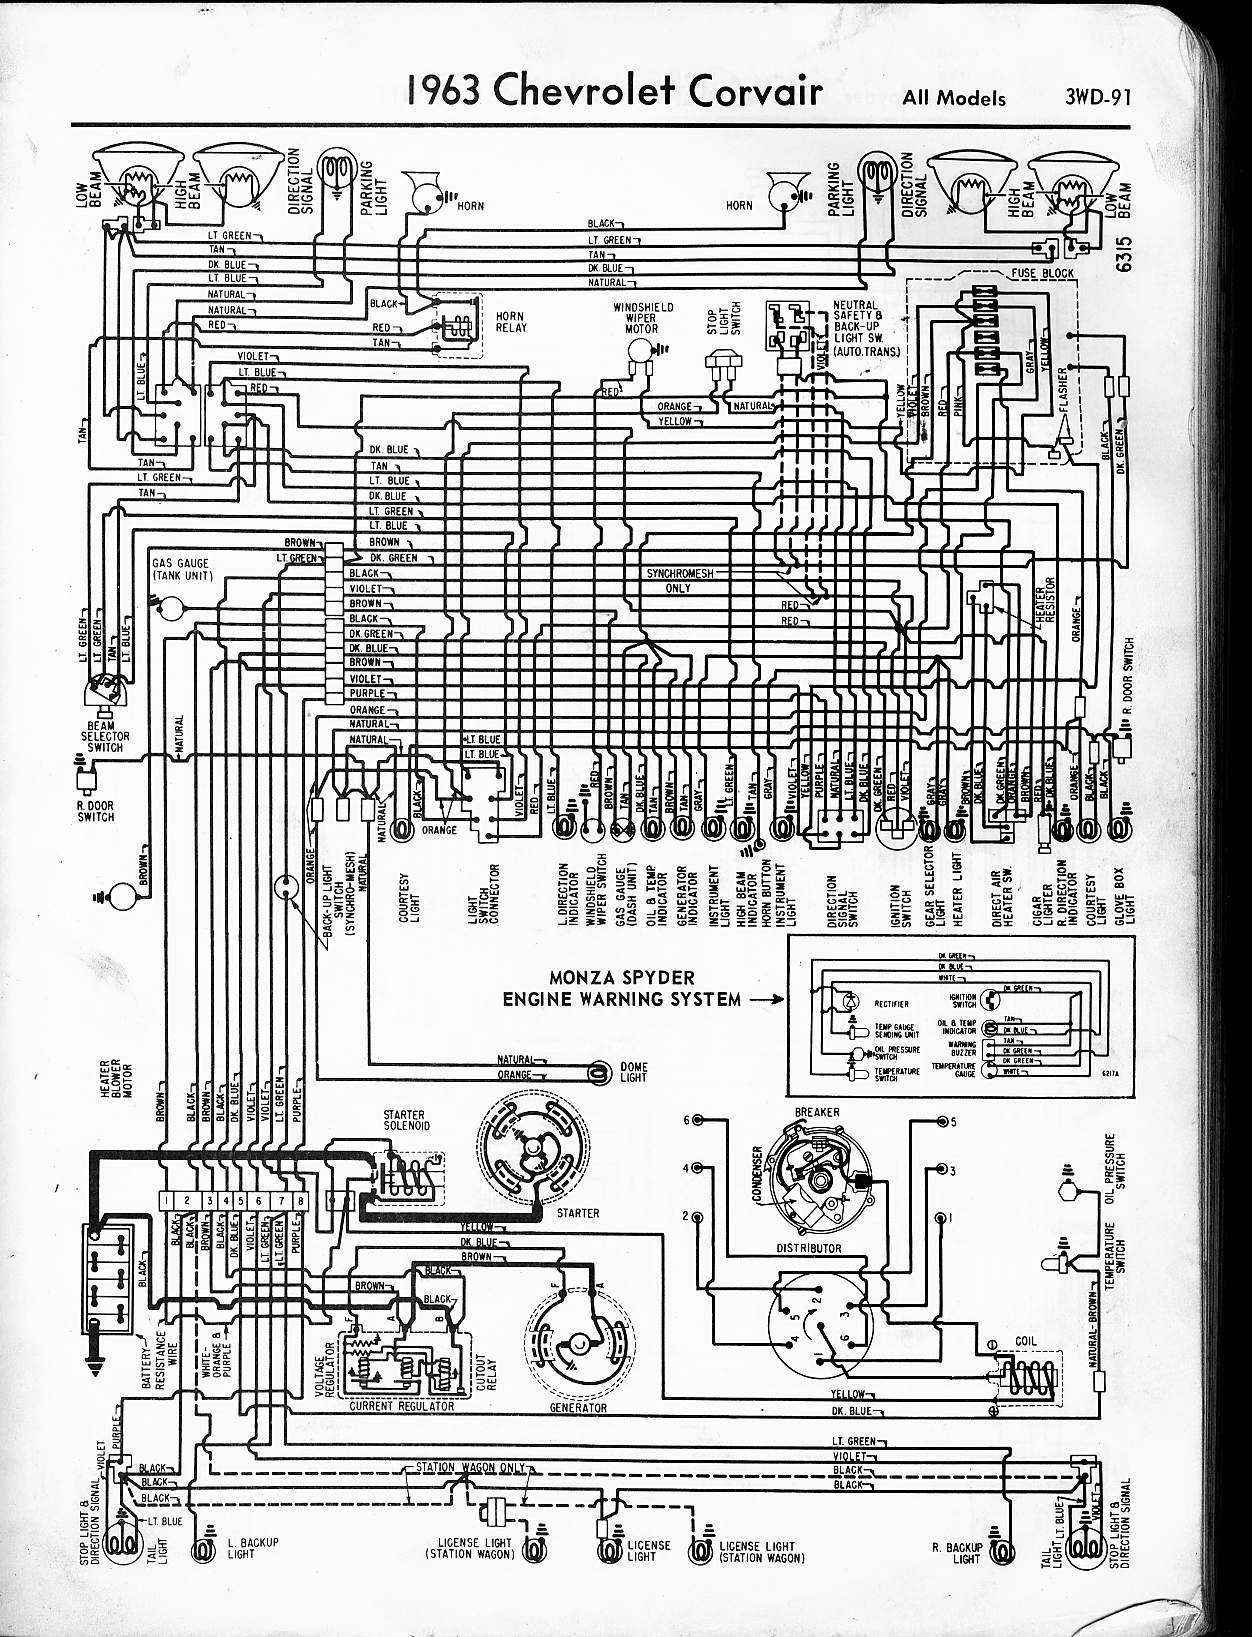 MWireChev63_3WD 091 57 65 chevy wiring diagrams 1964 impala ss wiring diagram at n-0.co